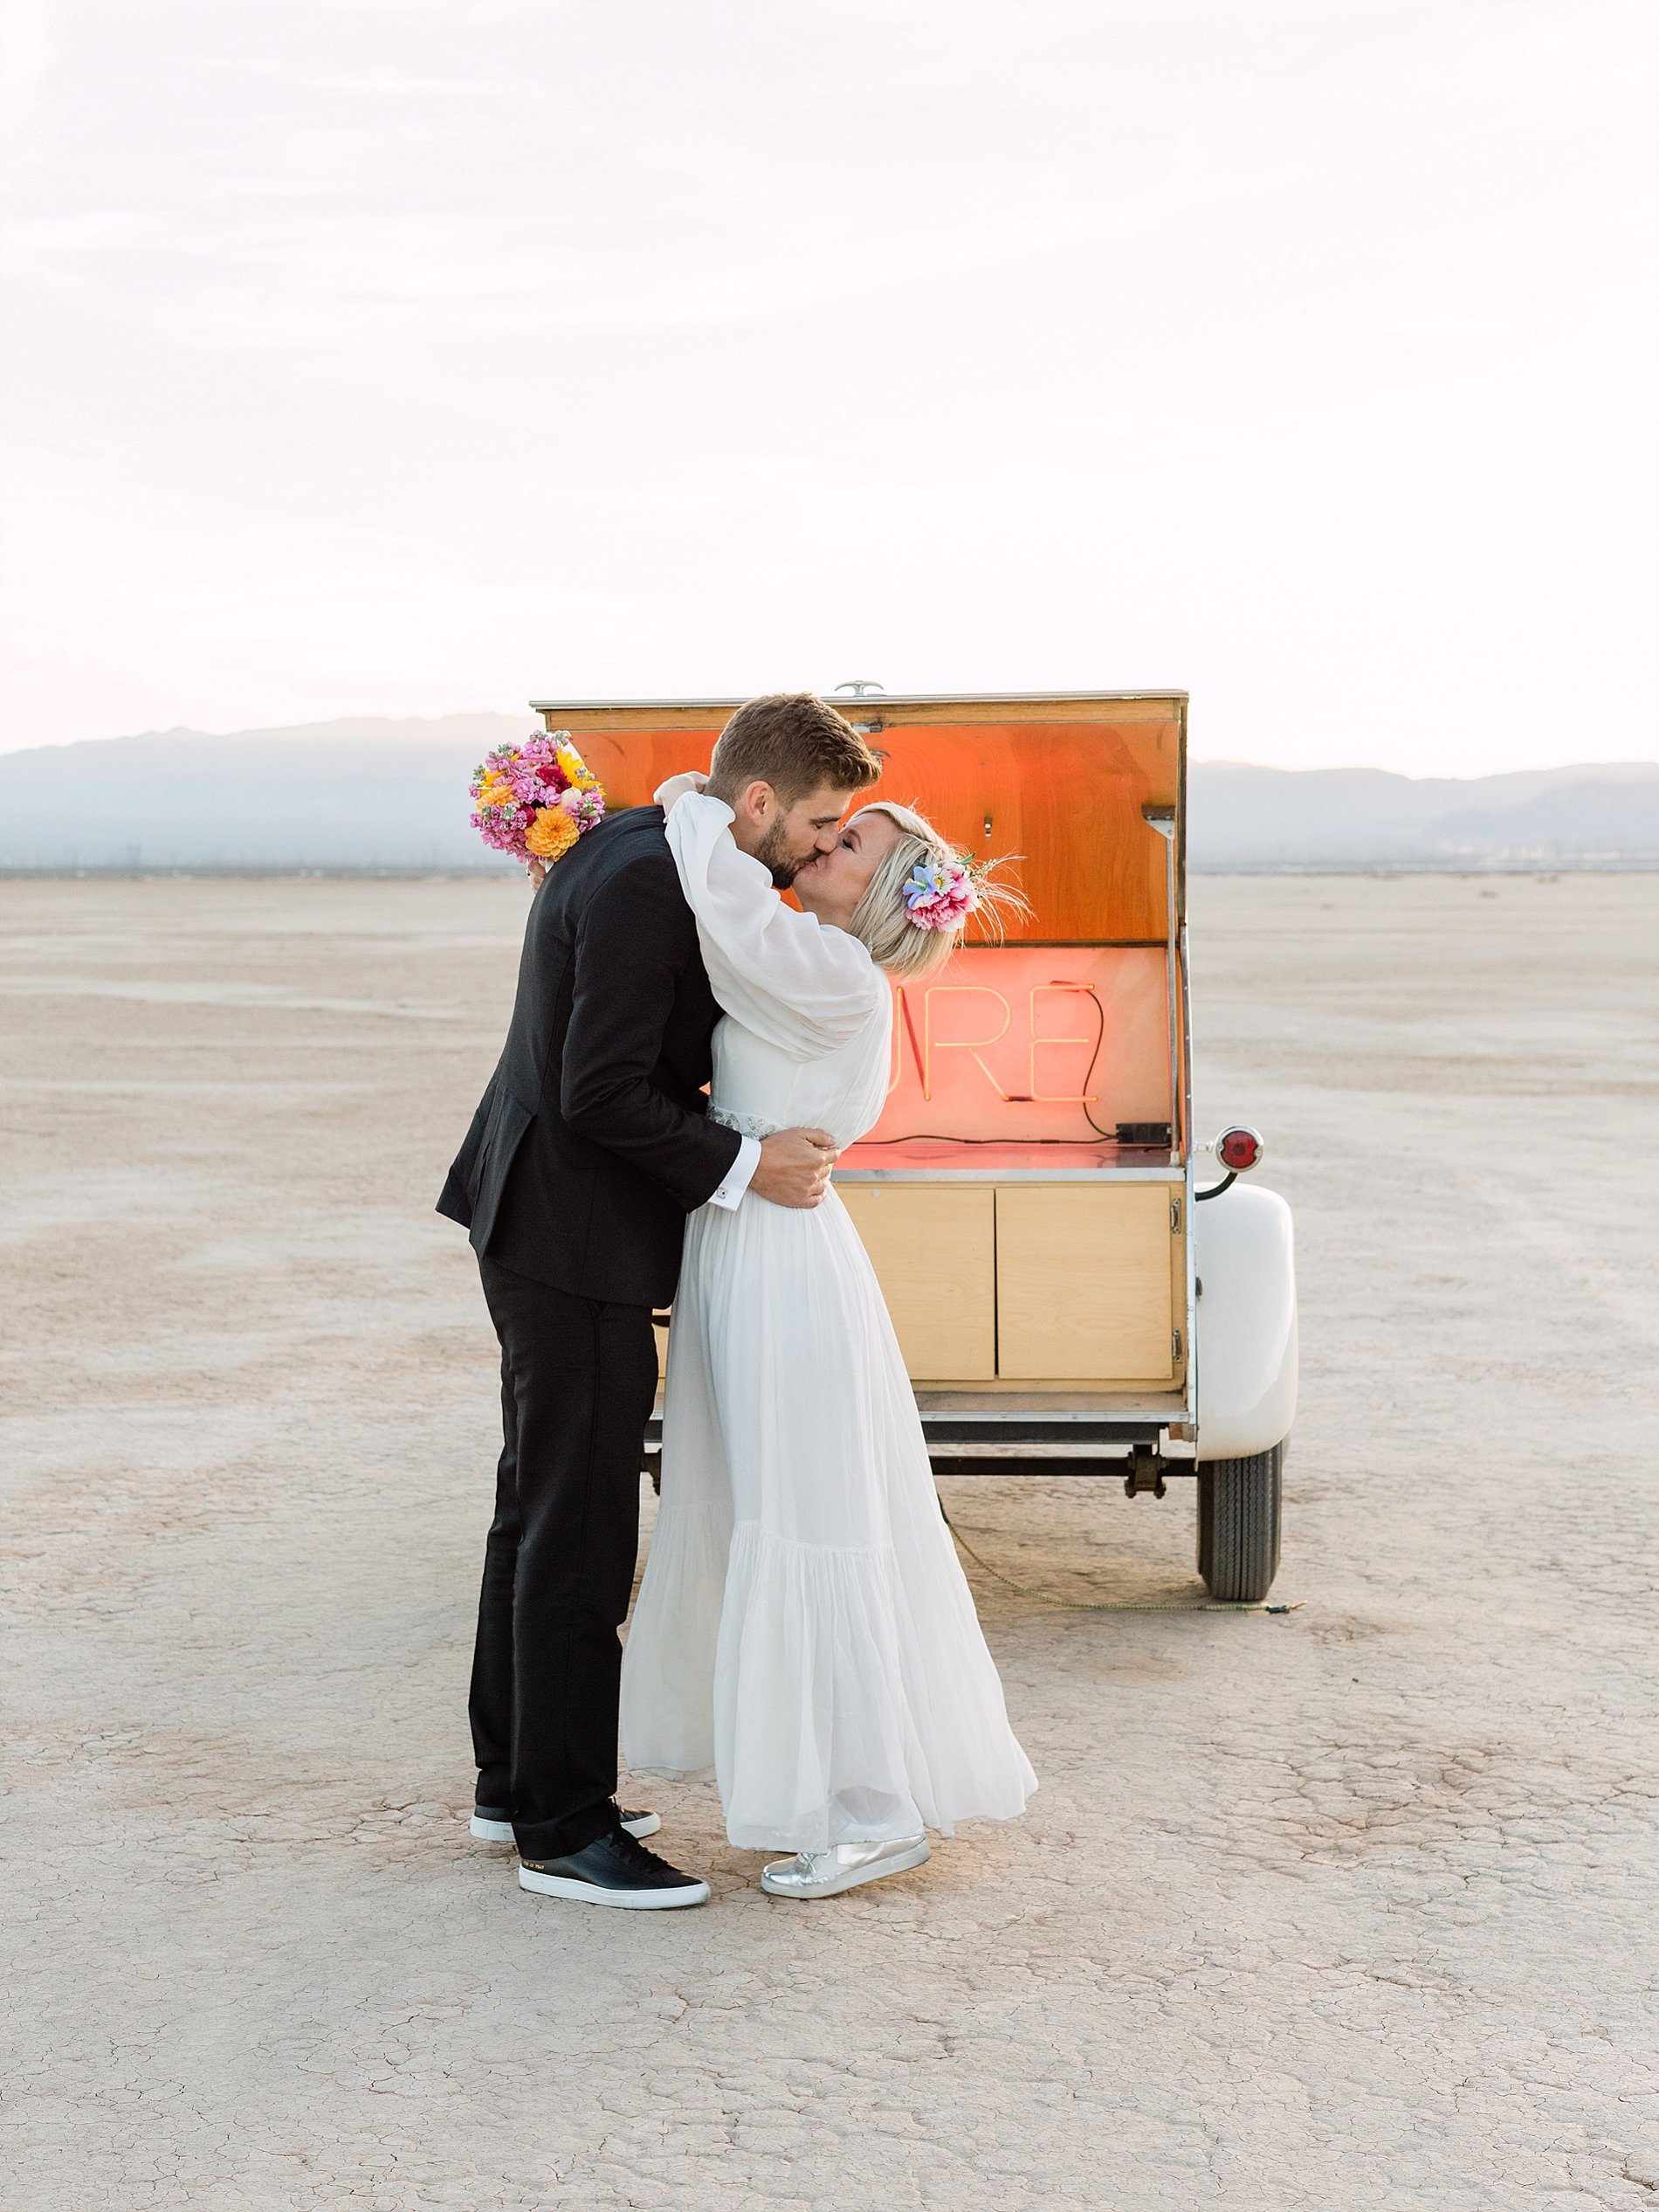 A Cool Wedding in Vegas (c) Gaby J Photography (37)